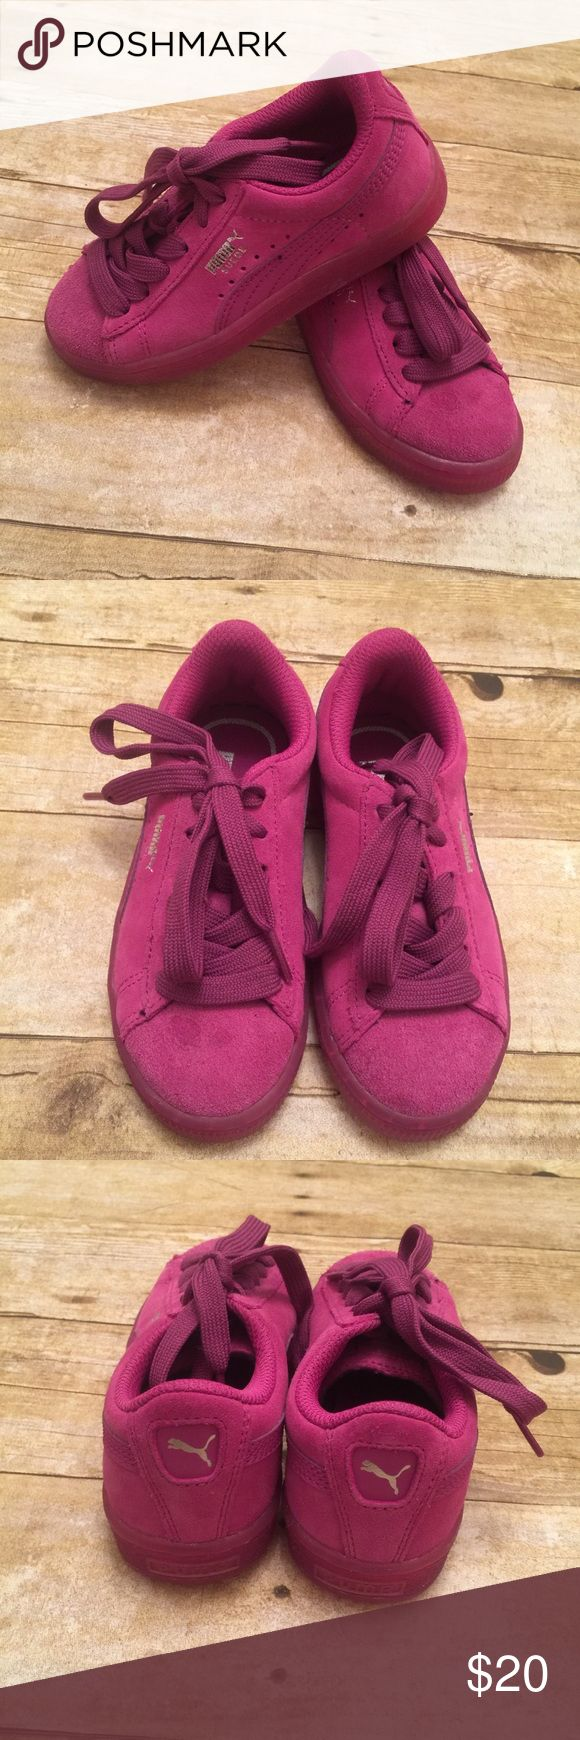 Puma Girls 11.5c purple pink vivid viola Excellent Preowned Condition.. 11 1/2c Size Puma Shoes Sneakers